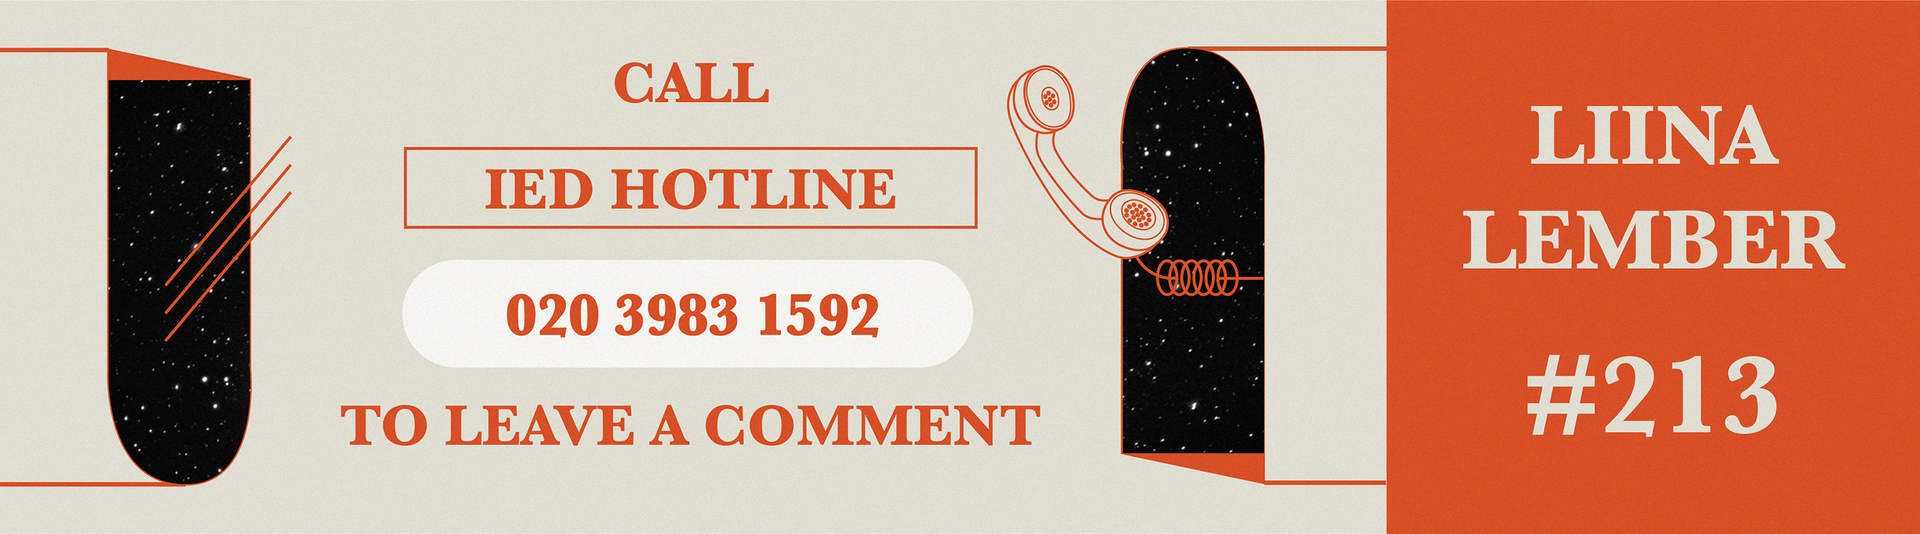 Would love to leave a comment? Look no further. Call IED hotline now to say hello.